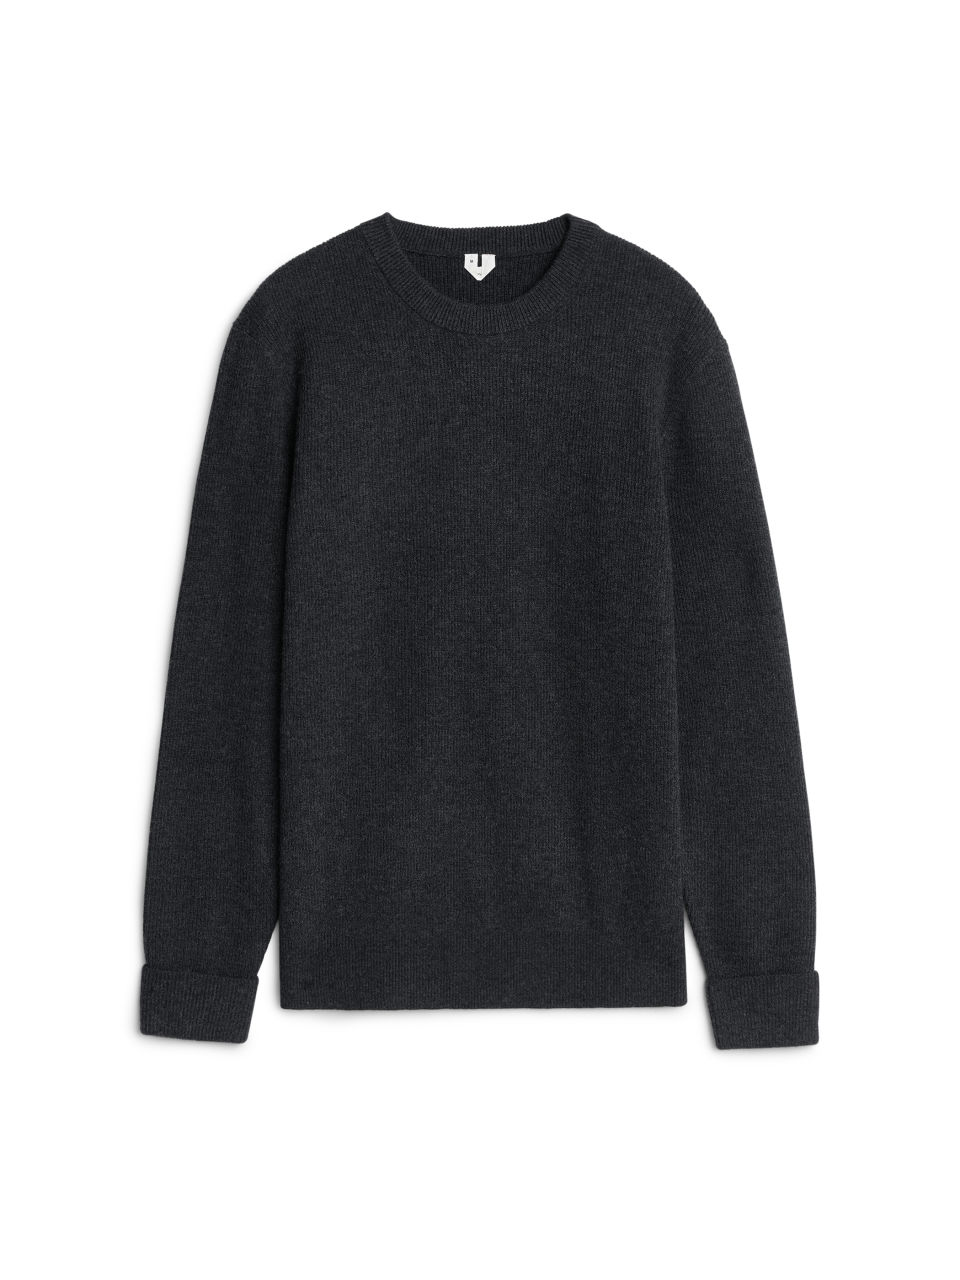 Black yak t shirt - Menknitwear Wool Yak Crew Neck Jumper